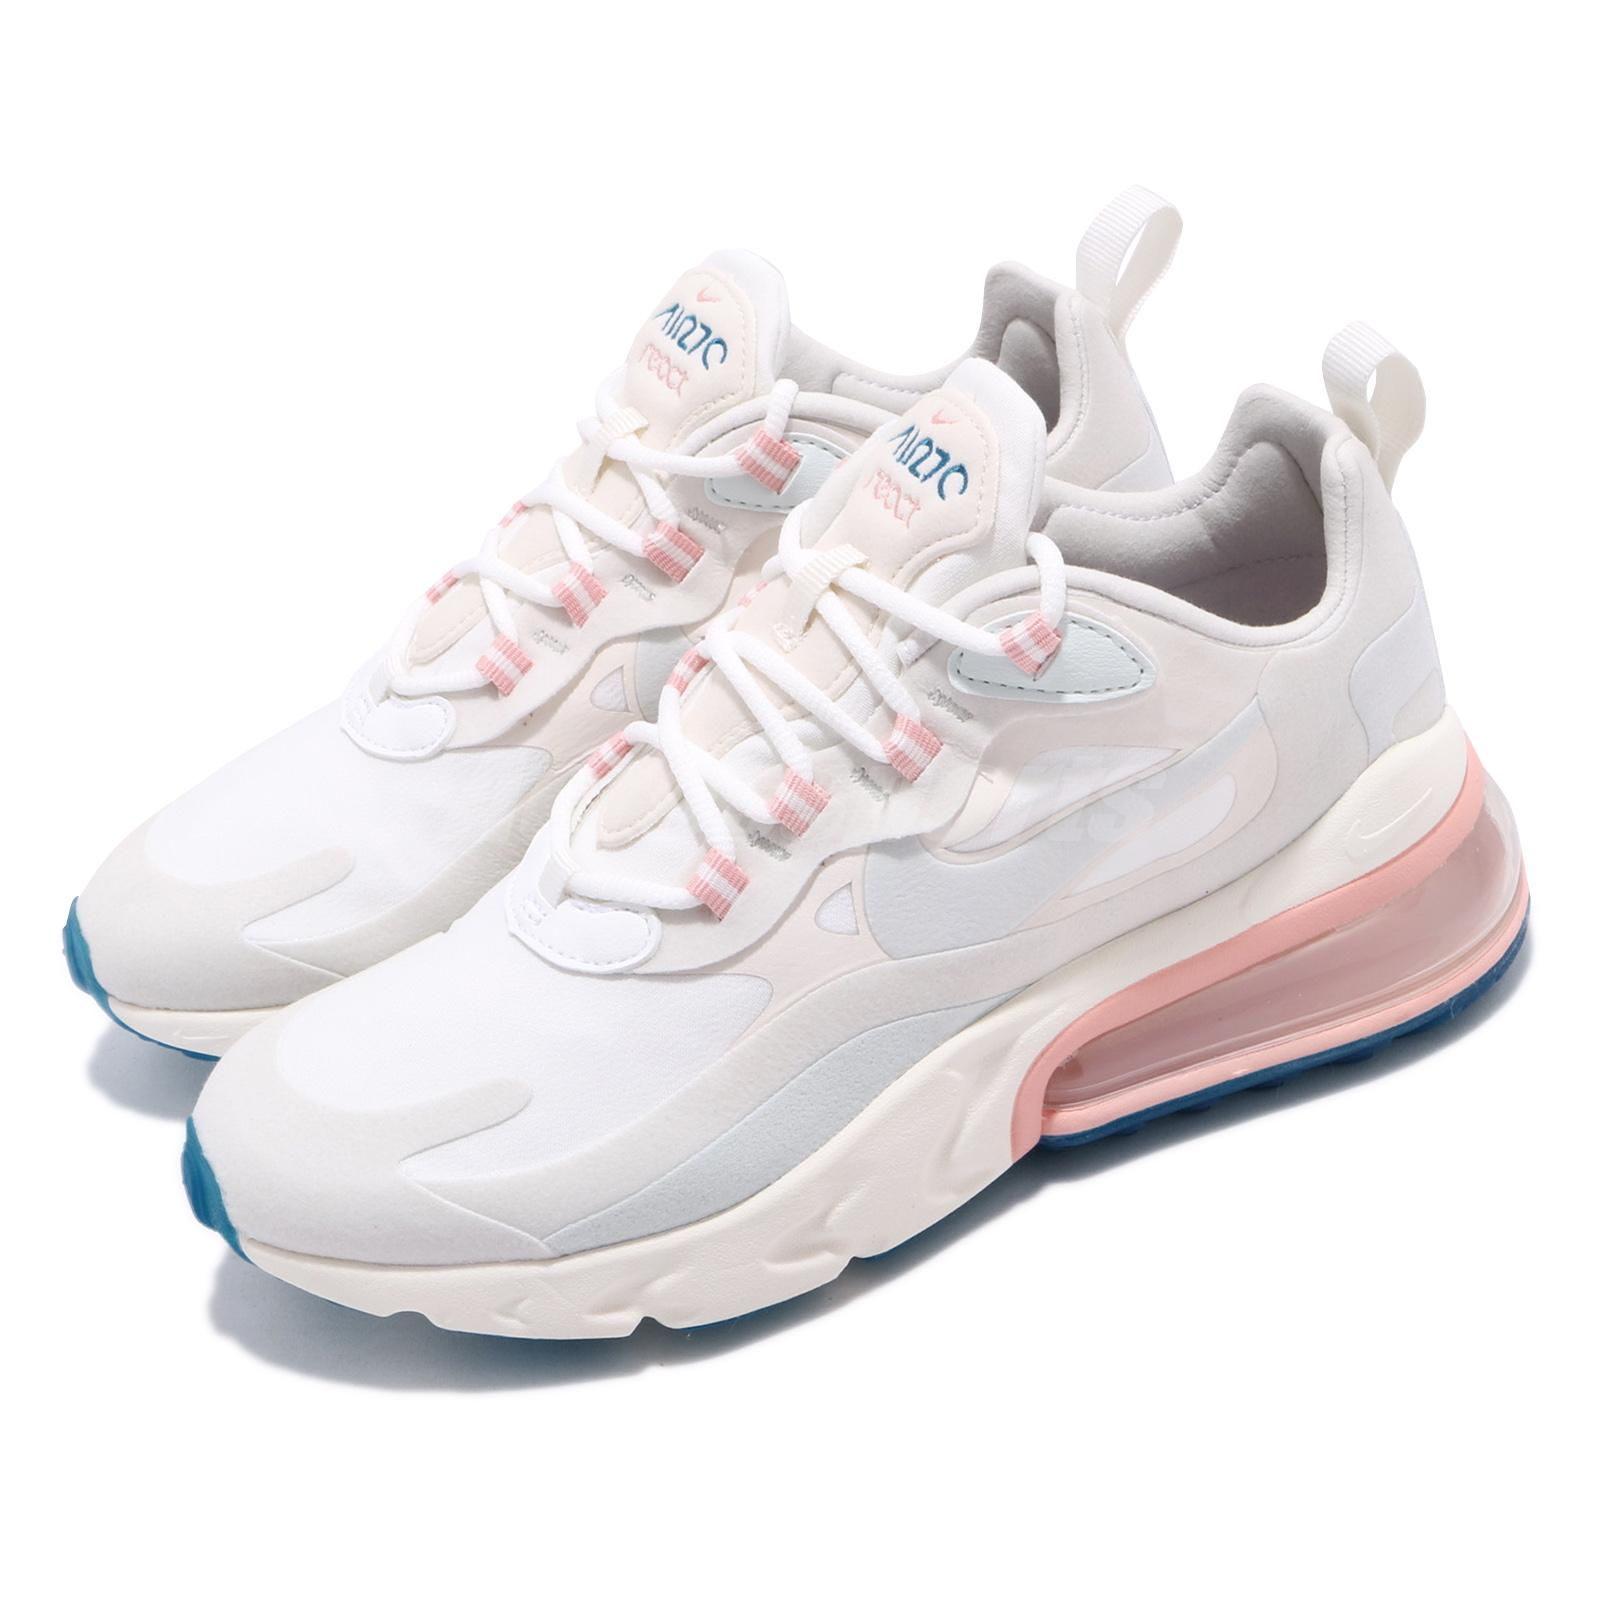 quality design c53ea 9f240 Details about Nike Air Max 270 React Summit White Blue Pink Womens Running  Shoes AT6174-100